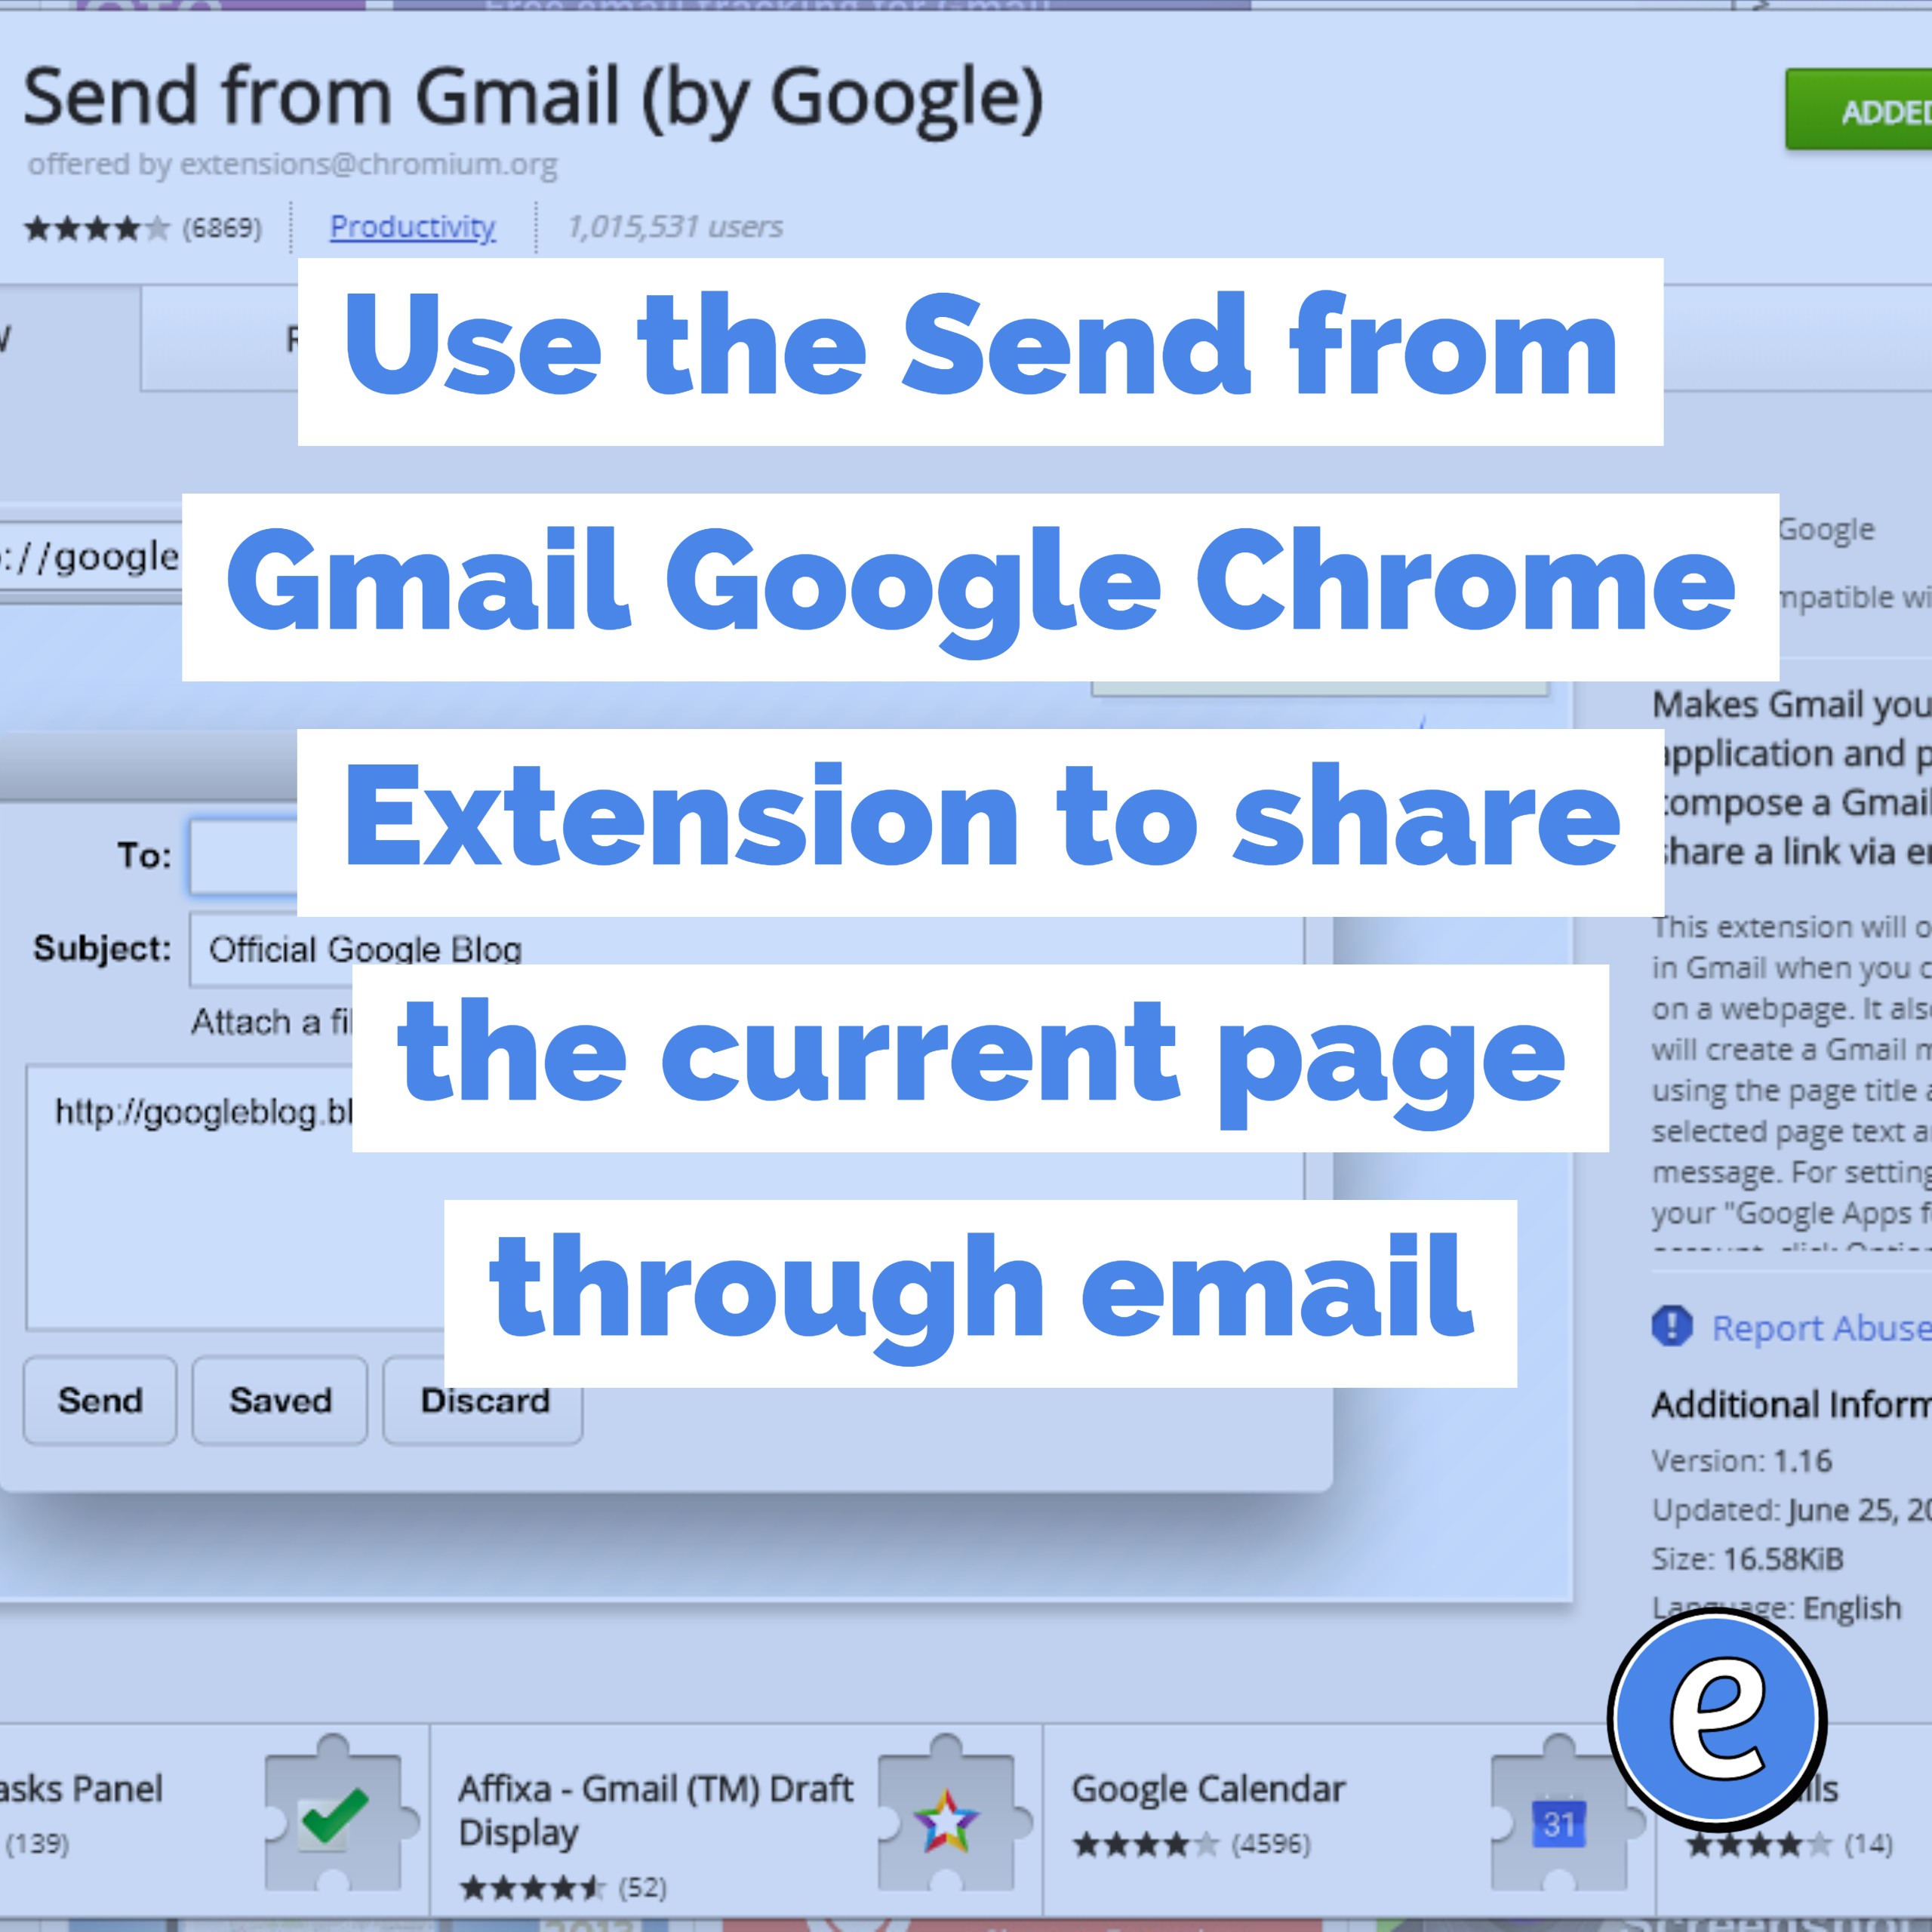 Use the Send from Gmail Google Chrome Extension to share the current page through email